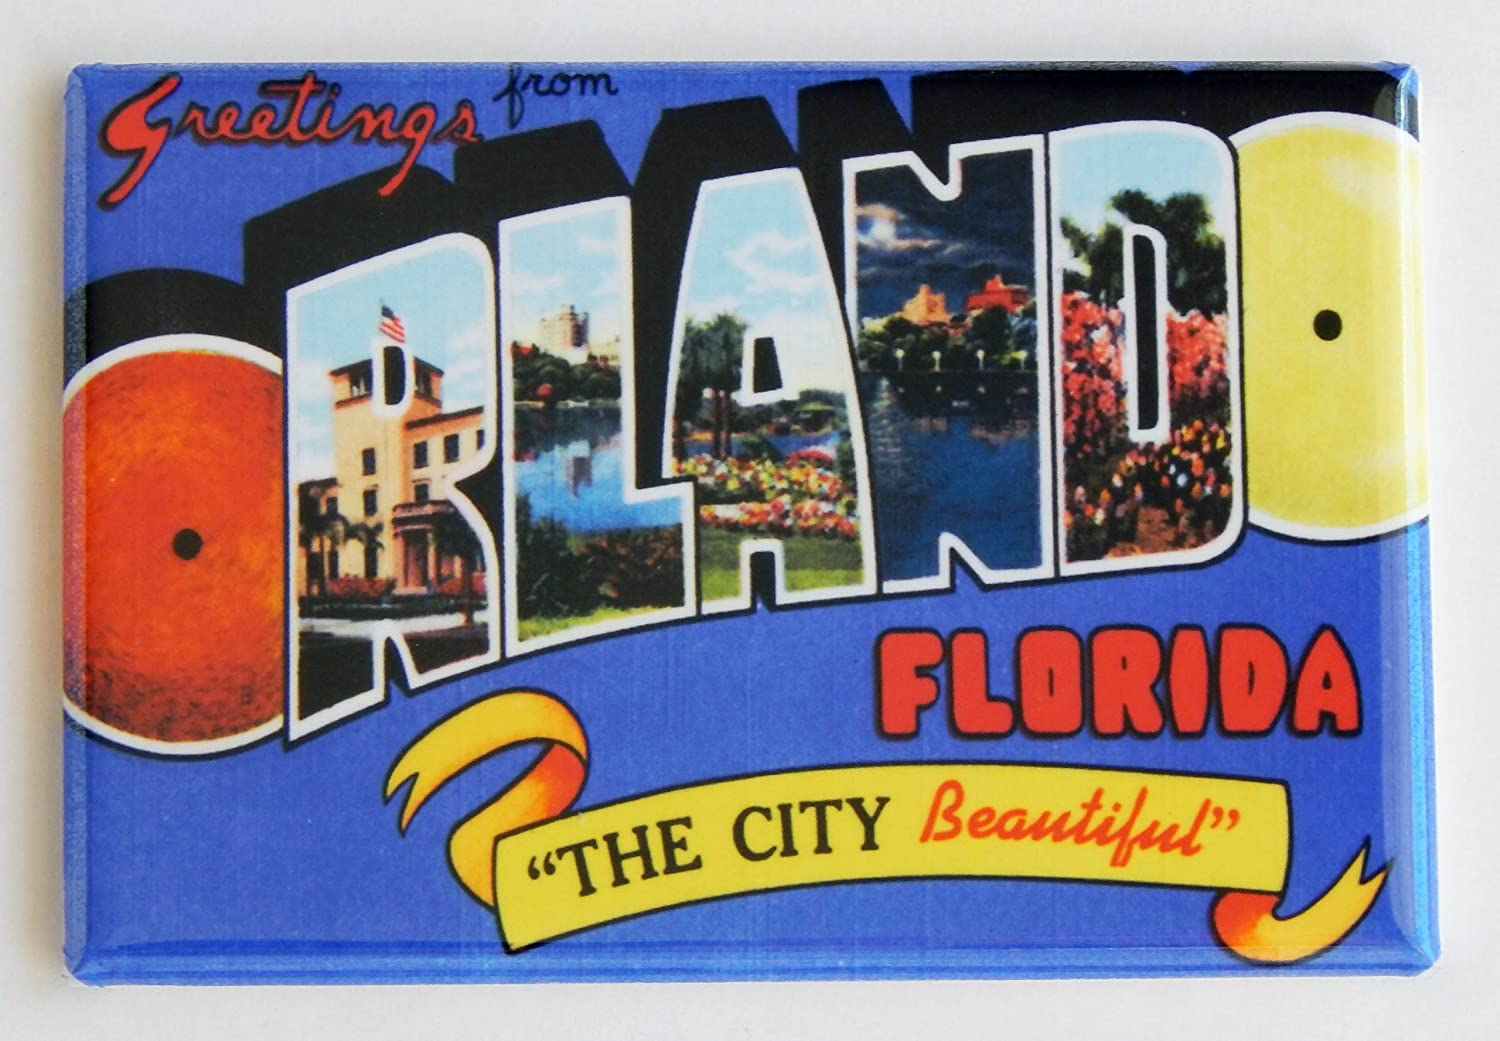 Greetings From Orlando Florida Fridge Magnet (2 x 3 inches)